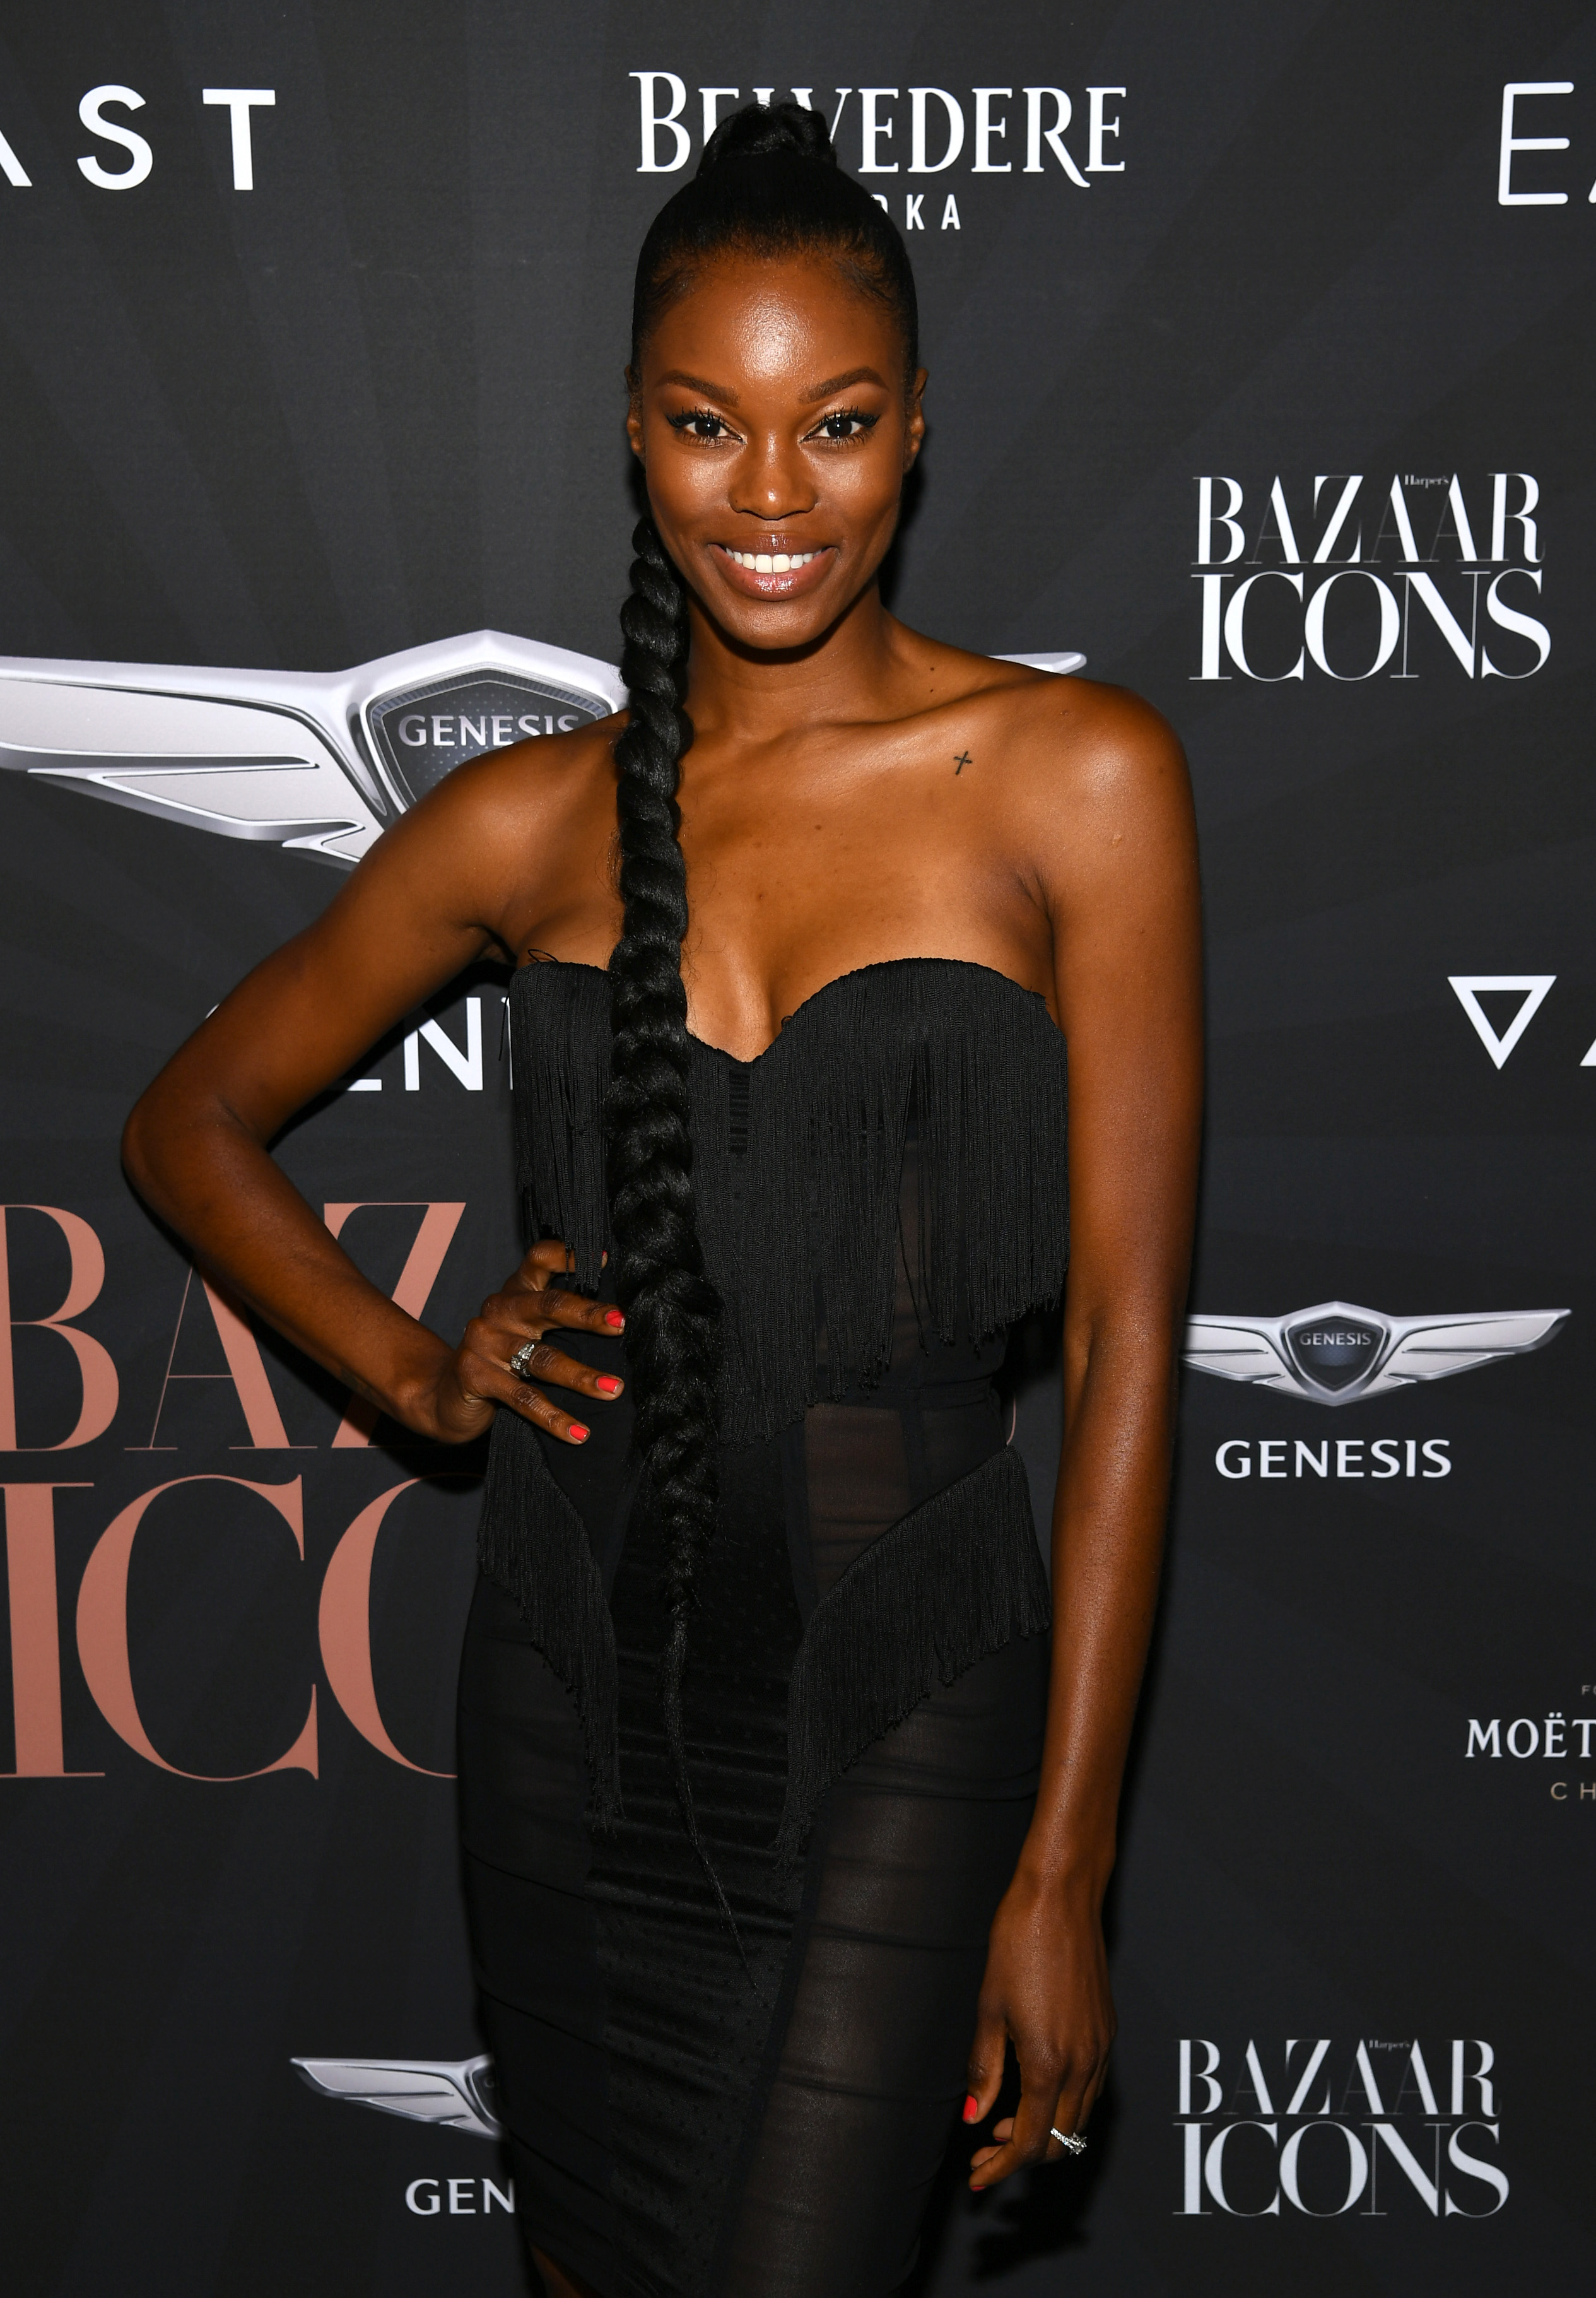 Genesis Presents The Official Harper's Bazaar Icons G-Seventies After Party